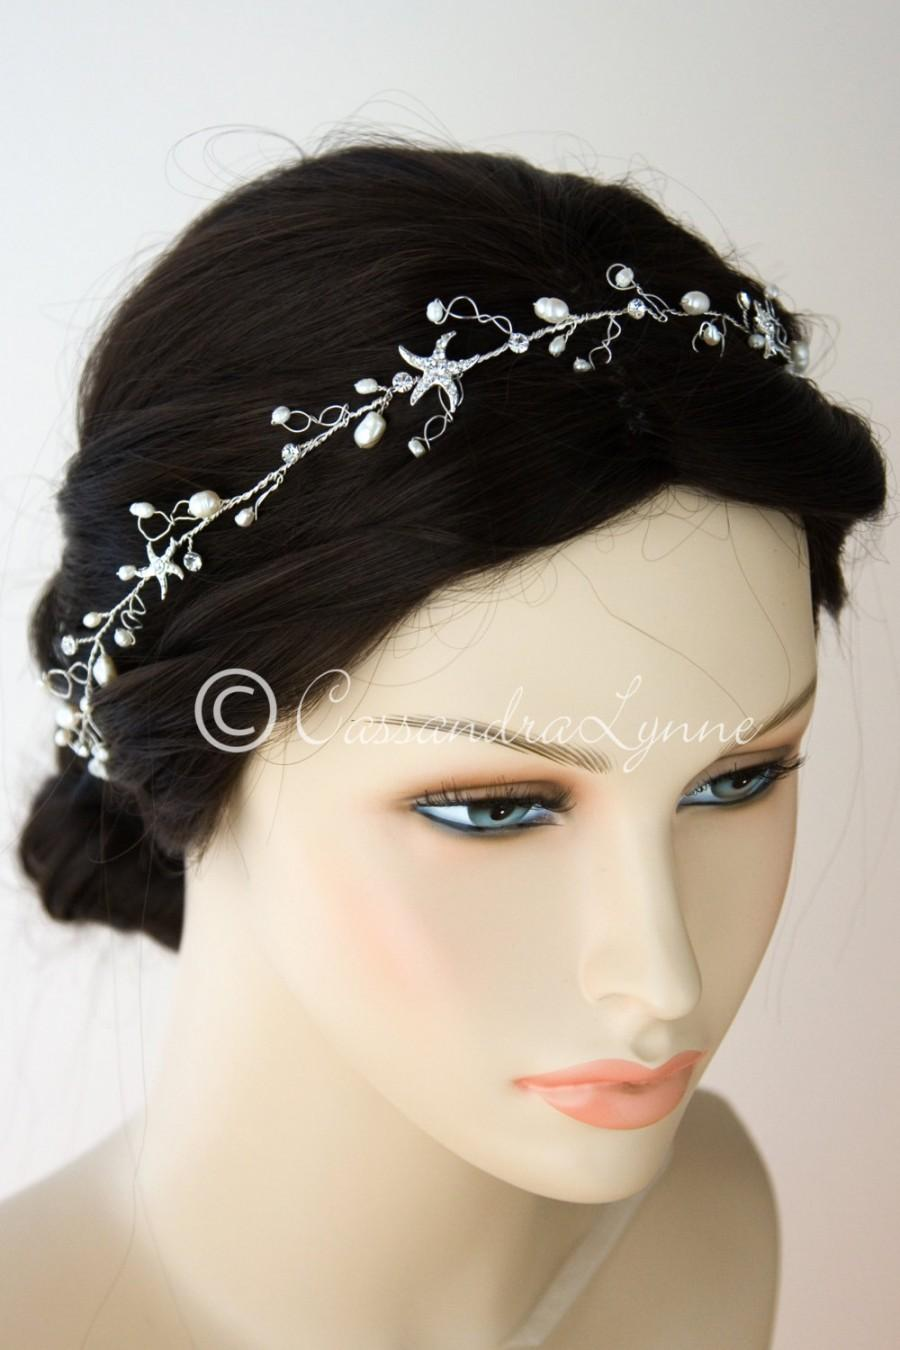 Beach Wedding Rhinestone Starfish Bridal Hair Wrap Headband Forehead Freshwater Pearls Organza Ribbon Headpiece